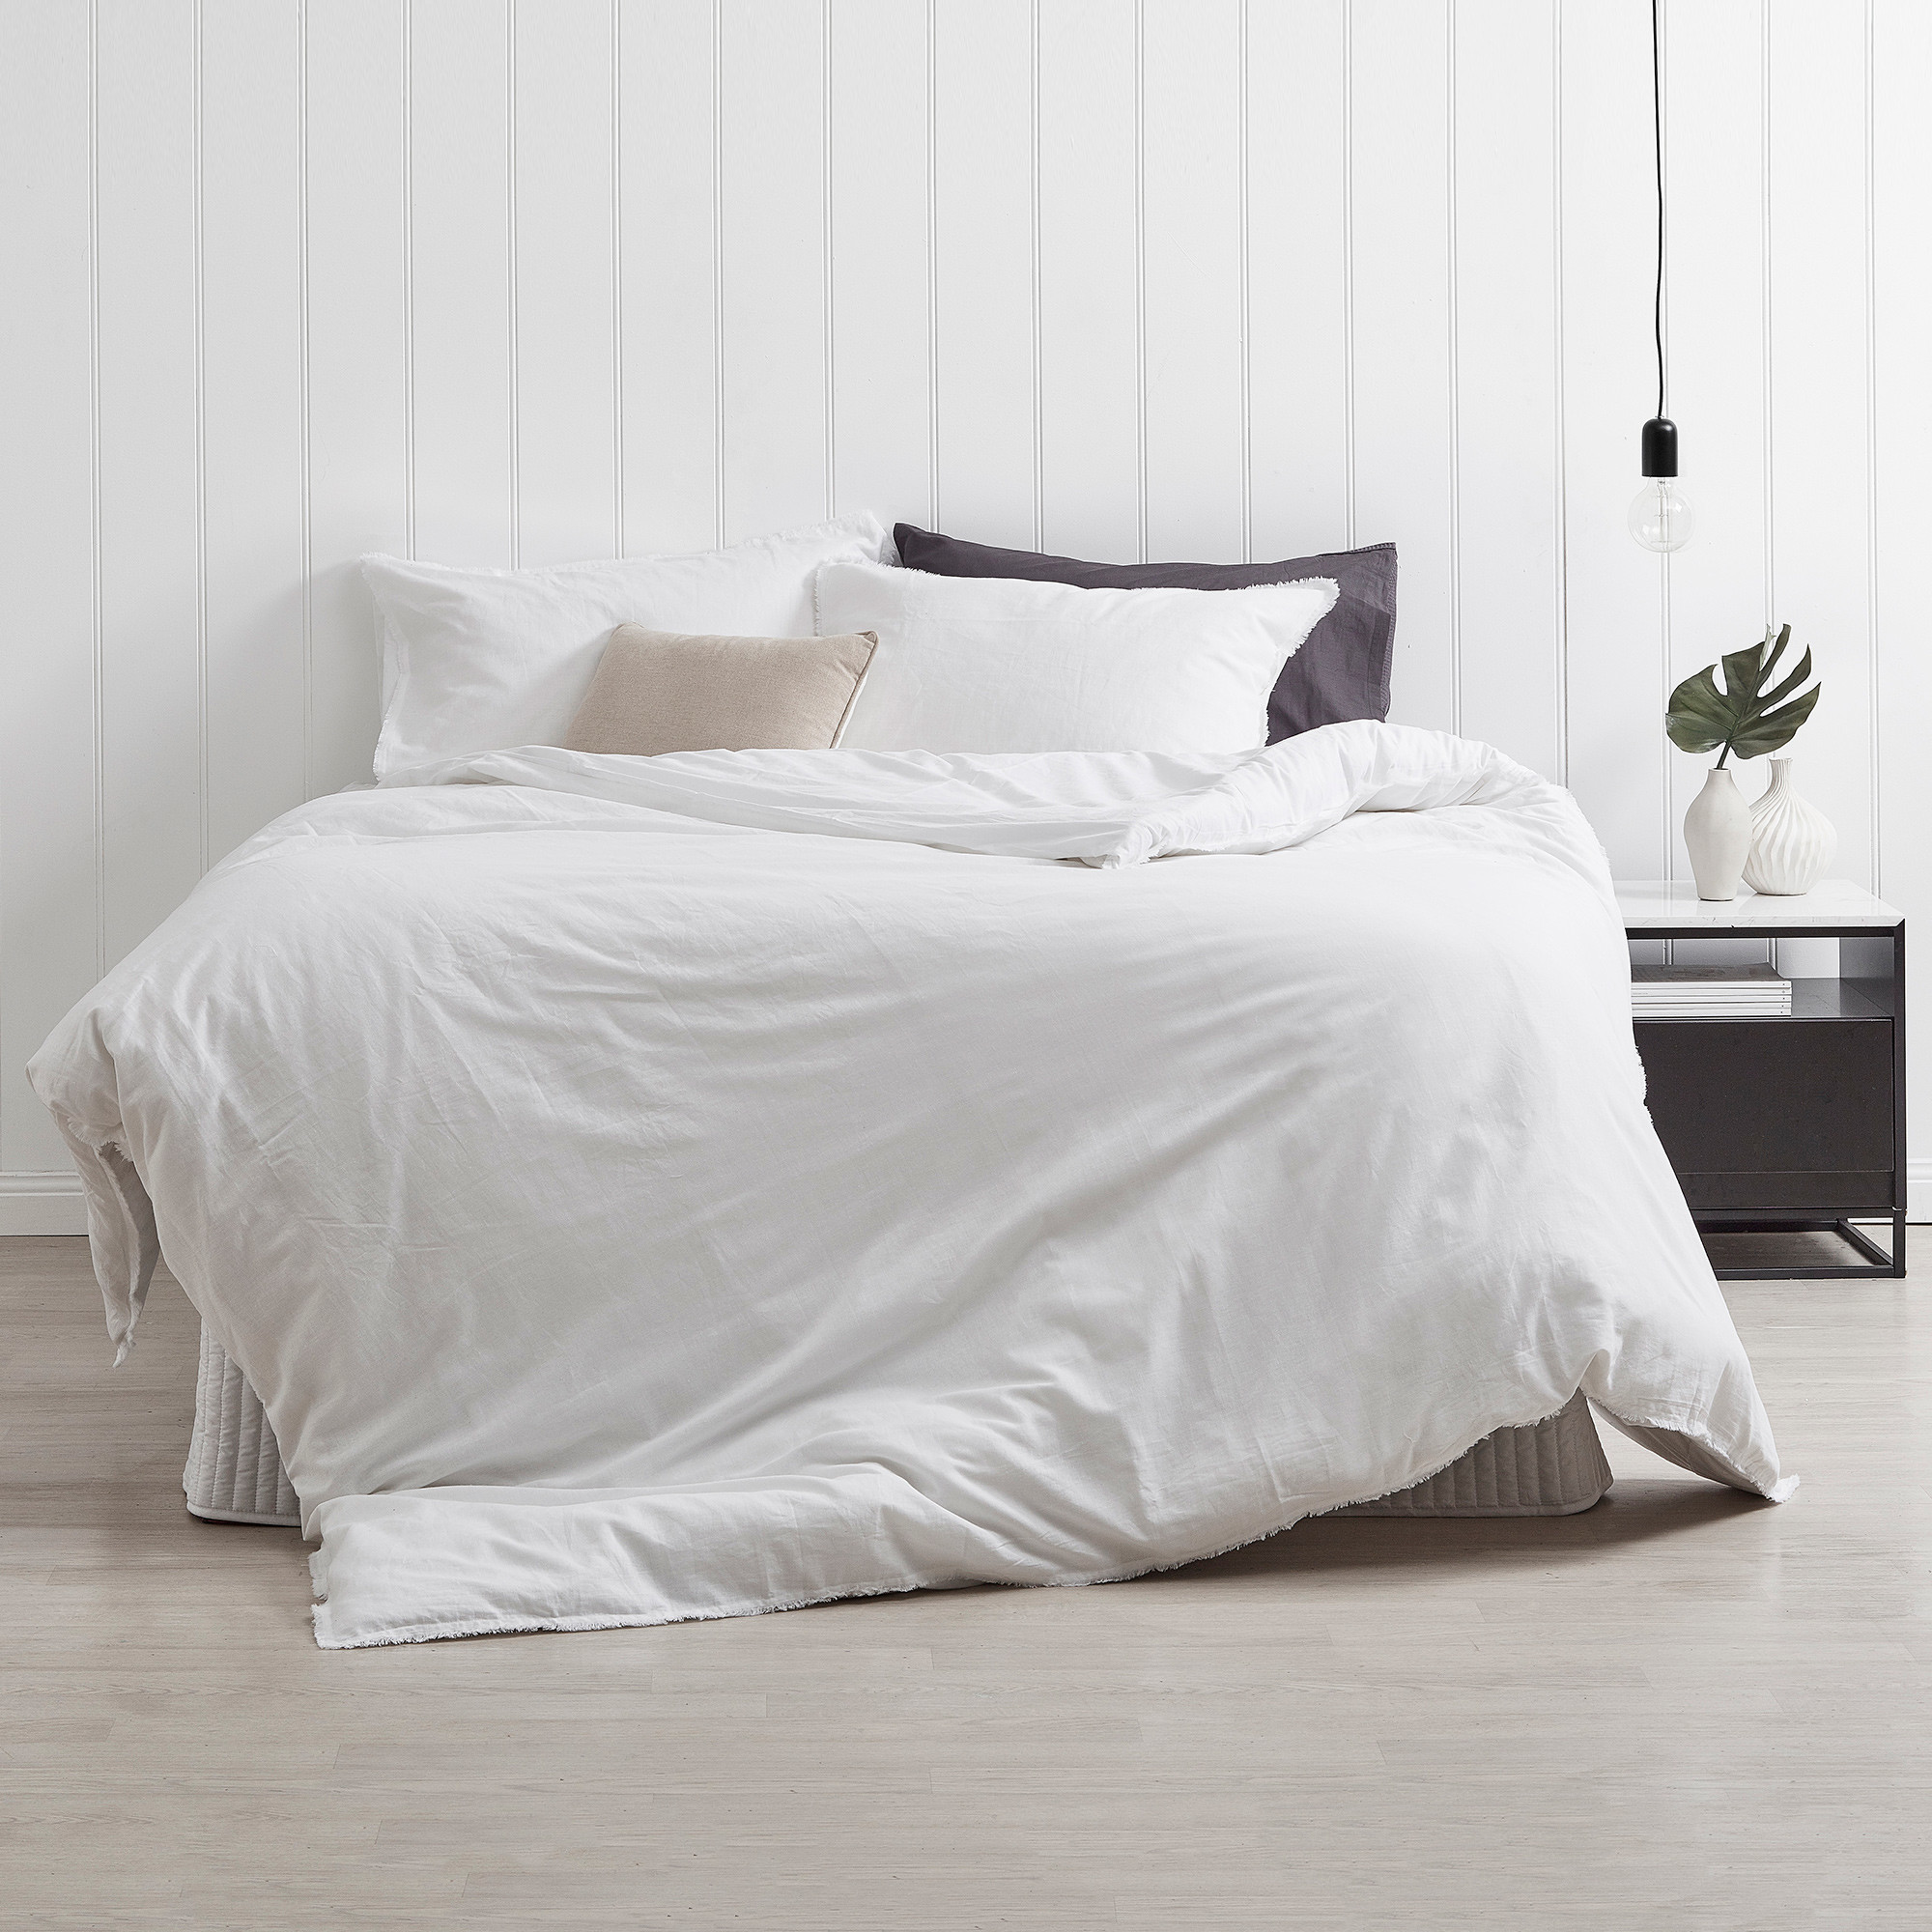 Quilt Cover Sets | Temple & Webster : white quilt cover sets - Adamdwight.com